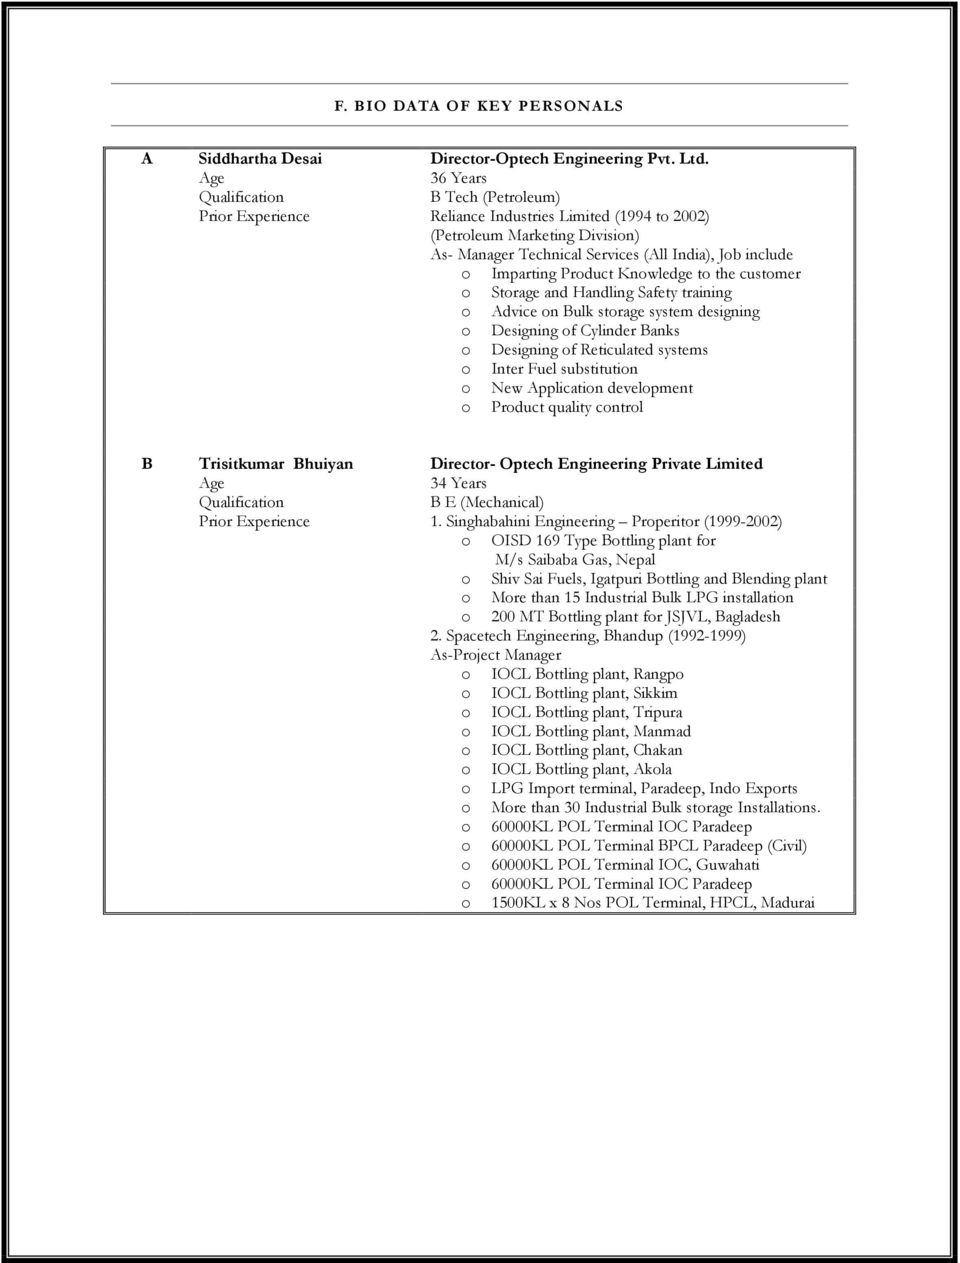 OPTECH ENGINEERING PRIVATE LIMITED A COMPANY PROFILE ALL TYPES OF